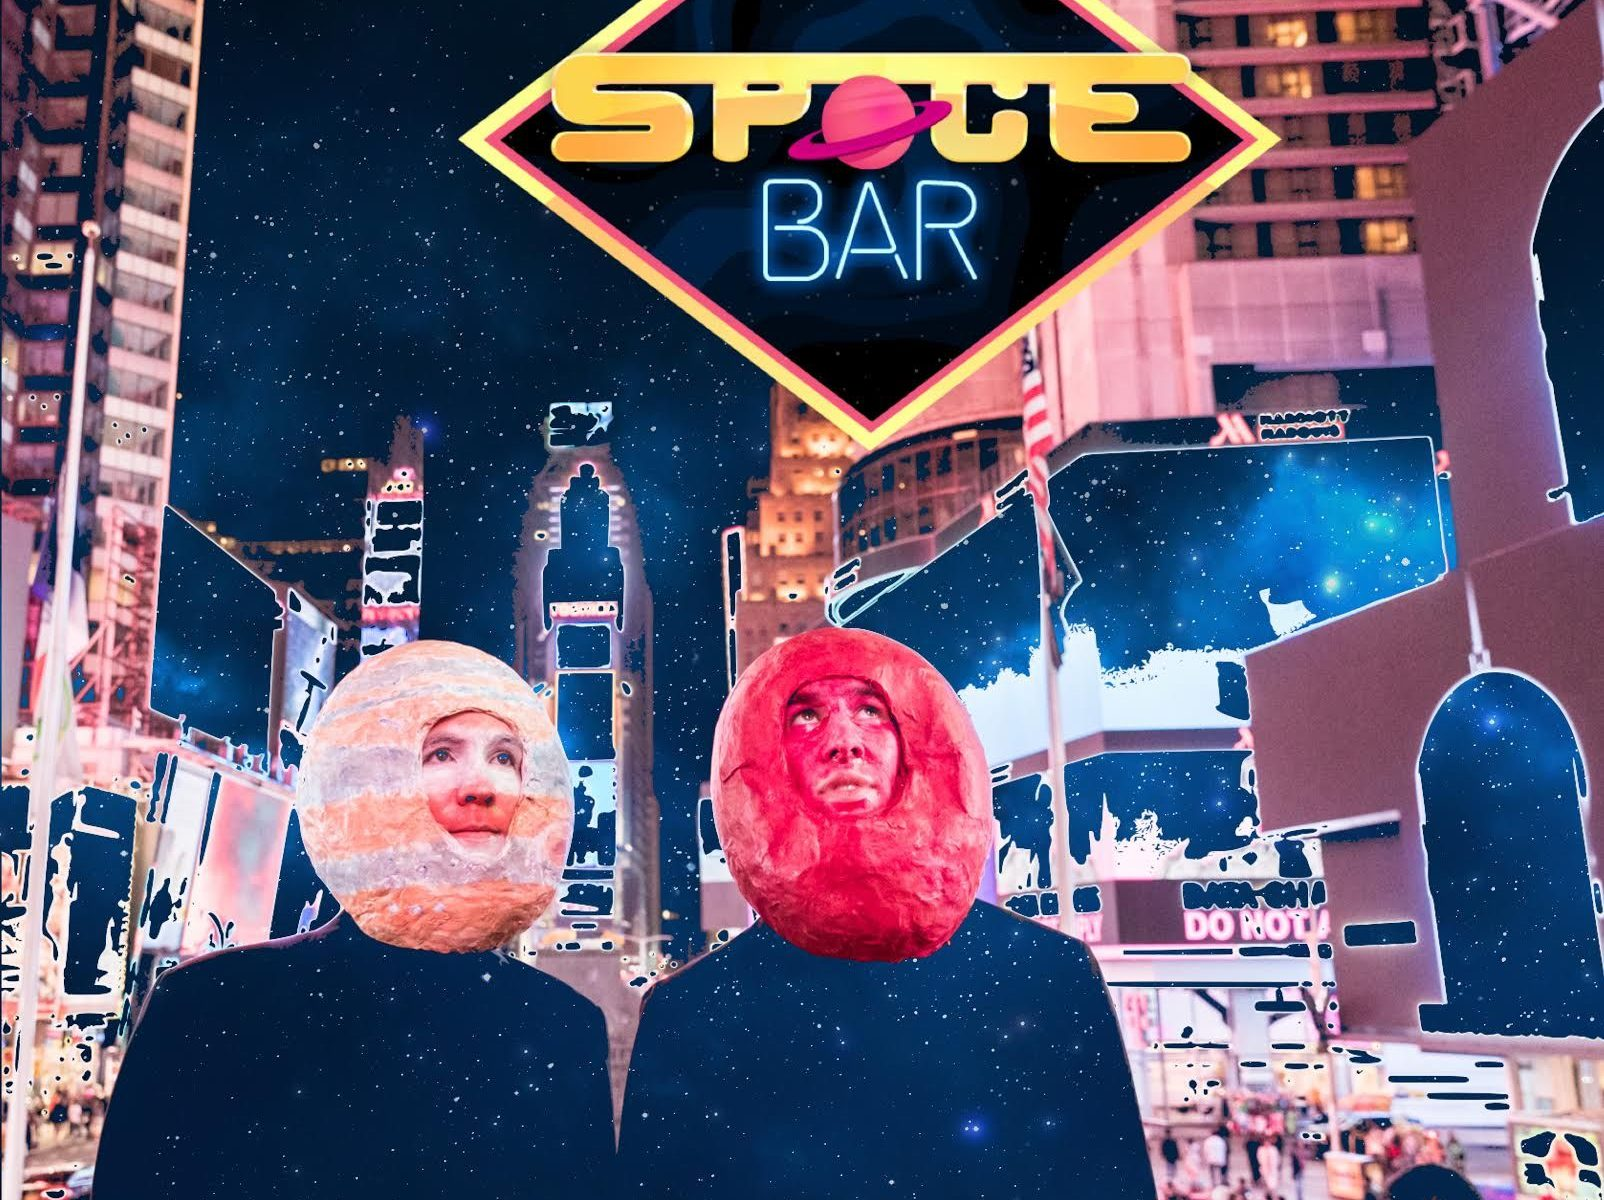 Spacebar characters Mars and Jupiter in Times Square